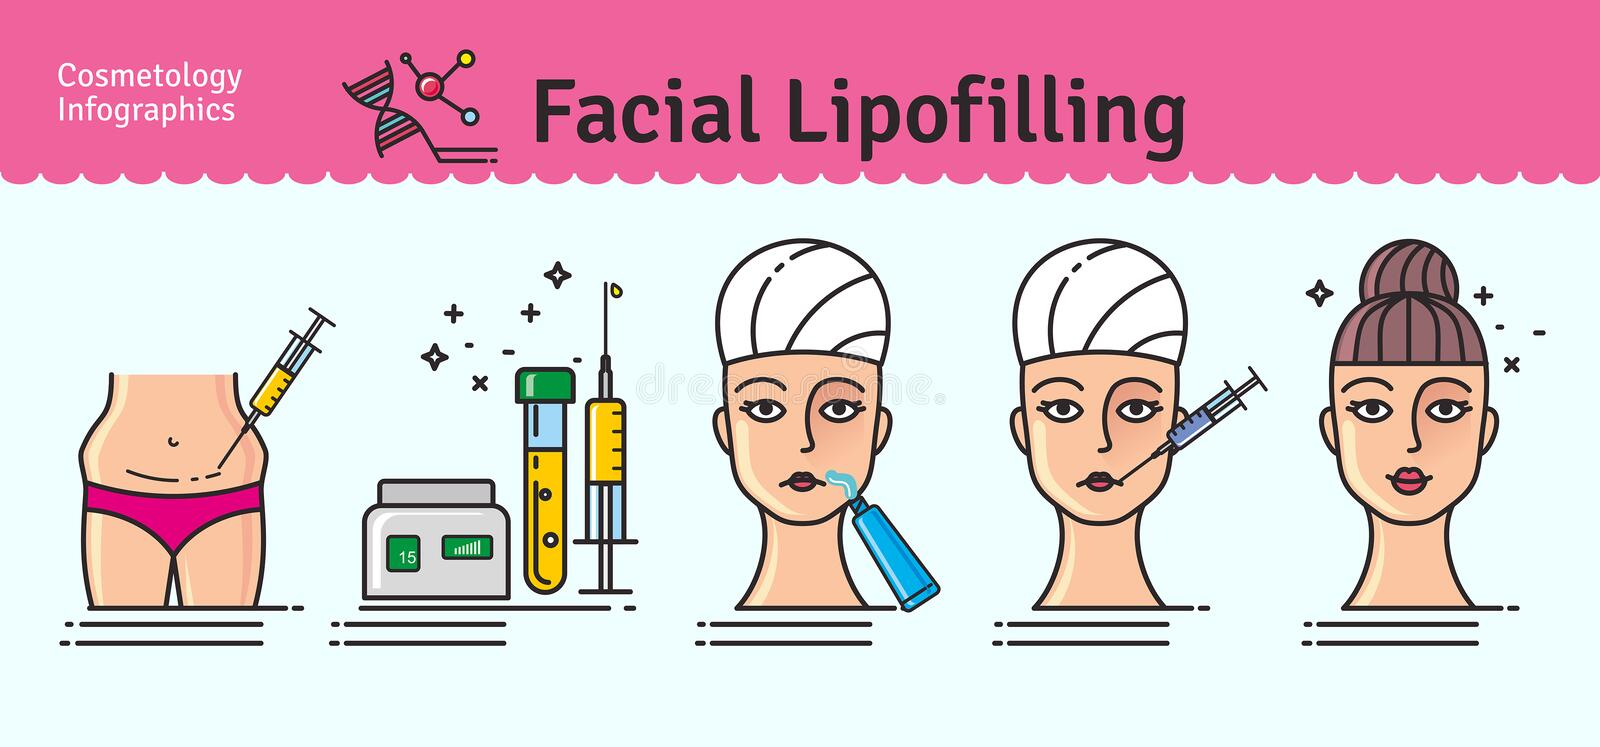 Ensemble illustré par vecteur avec lipofilling facial de cosmétologie illustration libre de droits